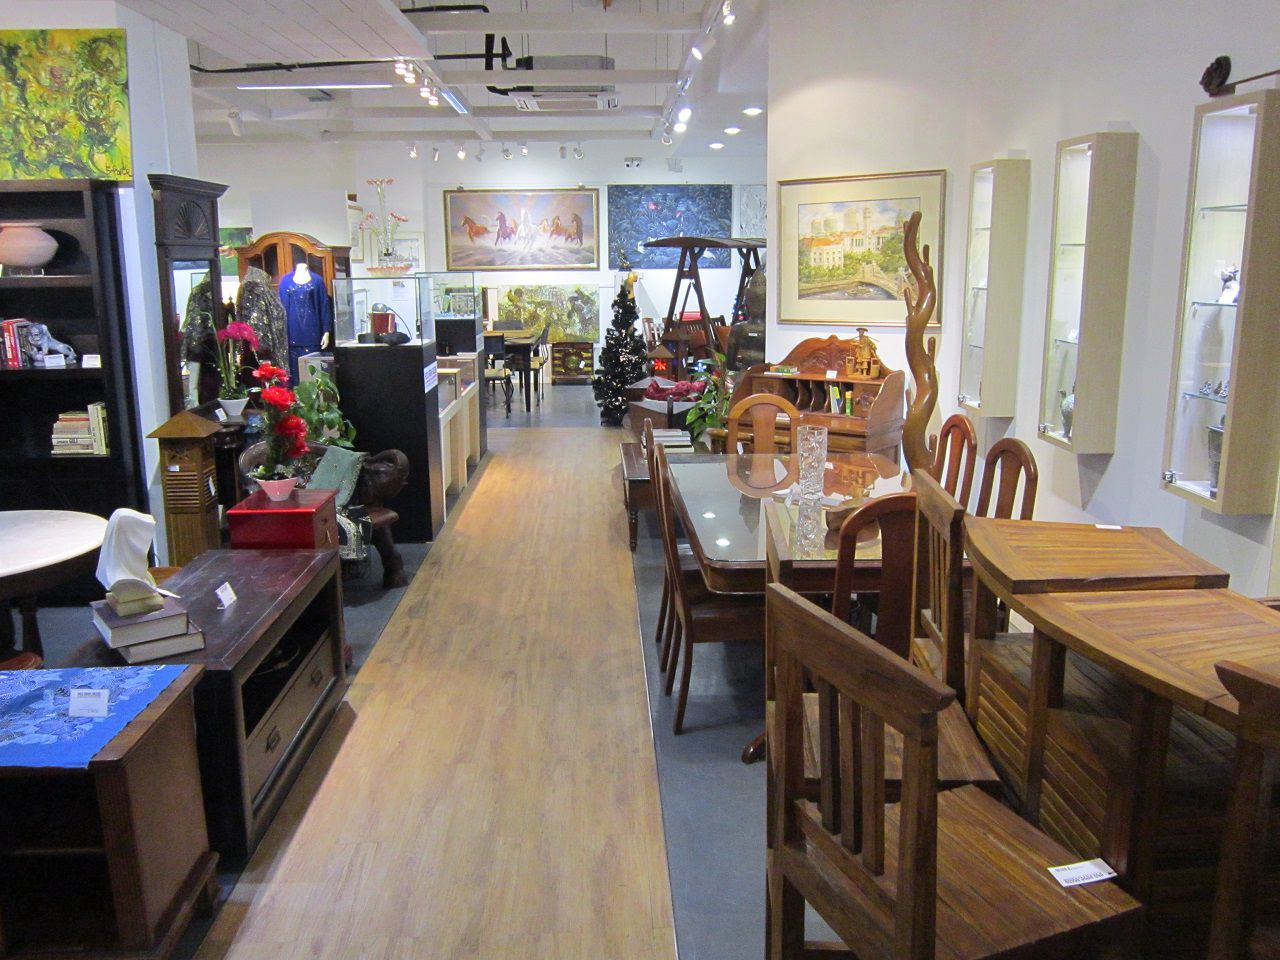 Use Second Hand Furniture for Old Fashioned Dining Room with Glass Top Dining Table and Cozy Chairs